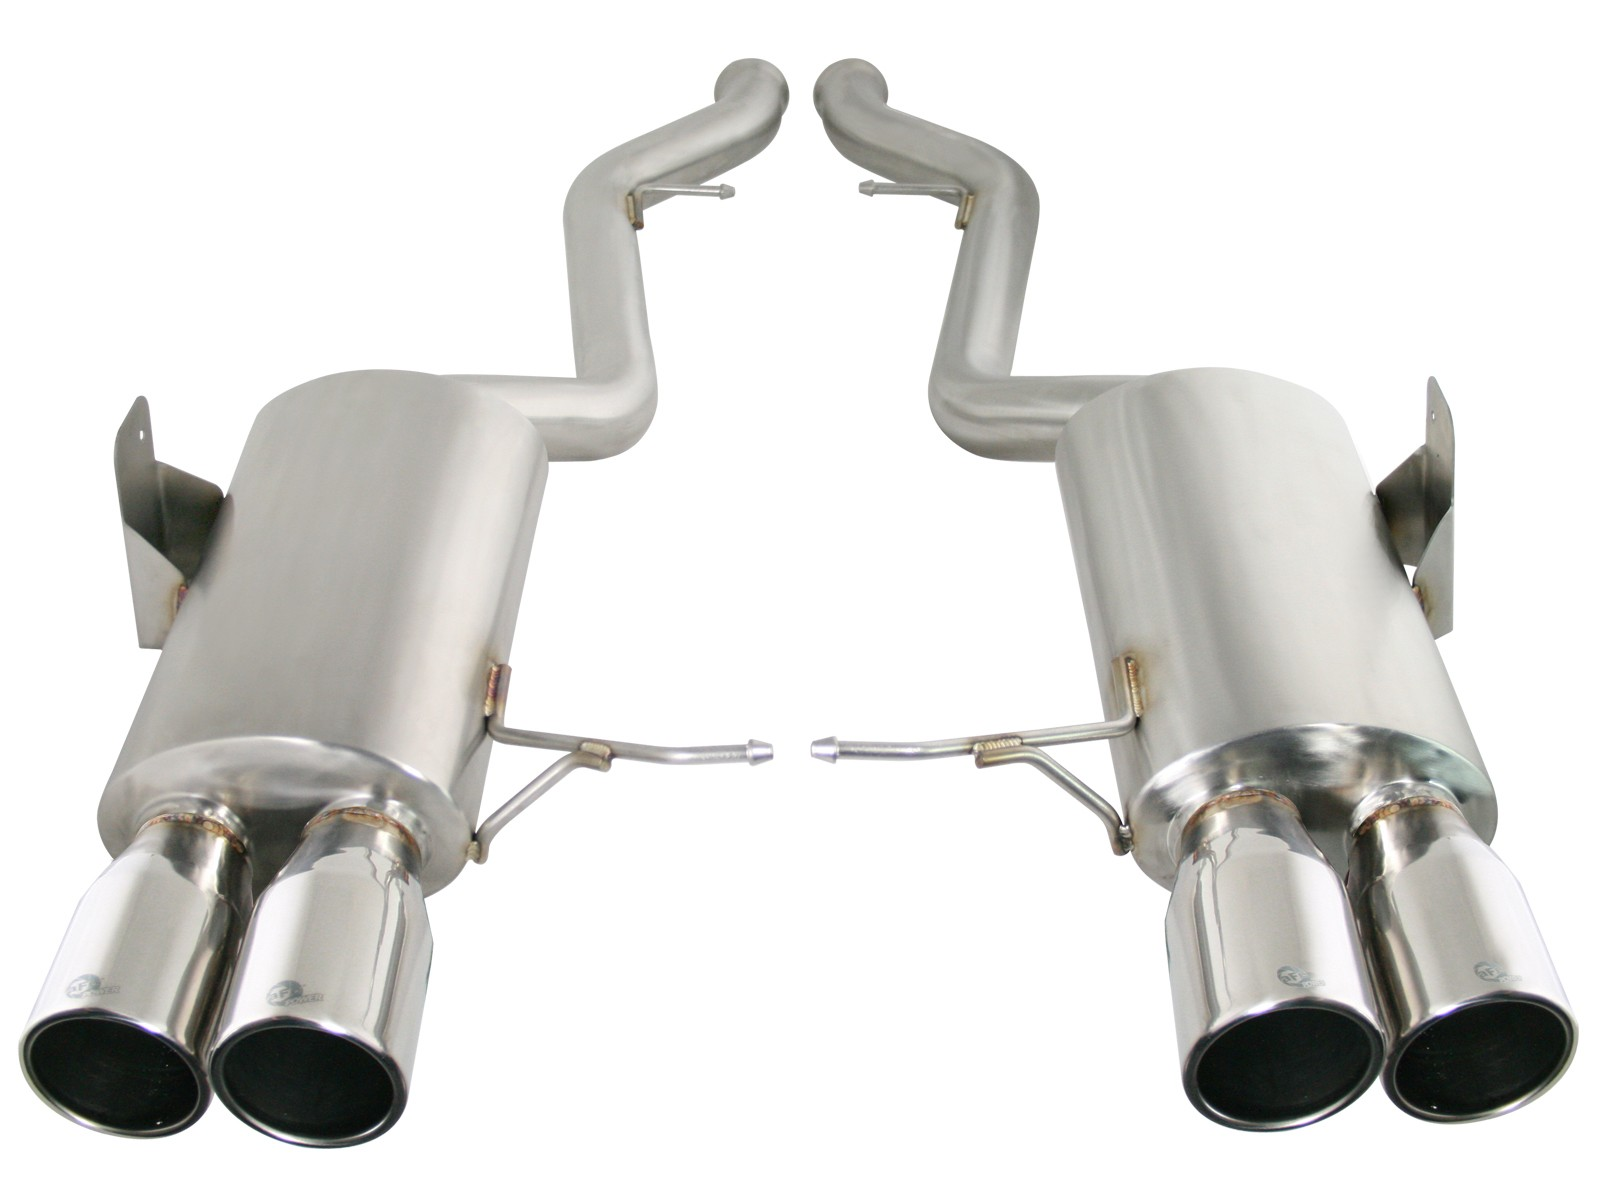 "aFe POWER 49-36312-P MACH Force-Xp 2-1/2"" 304 Stainless Steel Cat-Back Exhaust System"